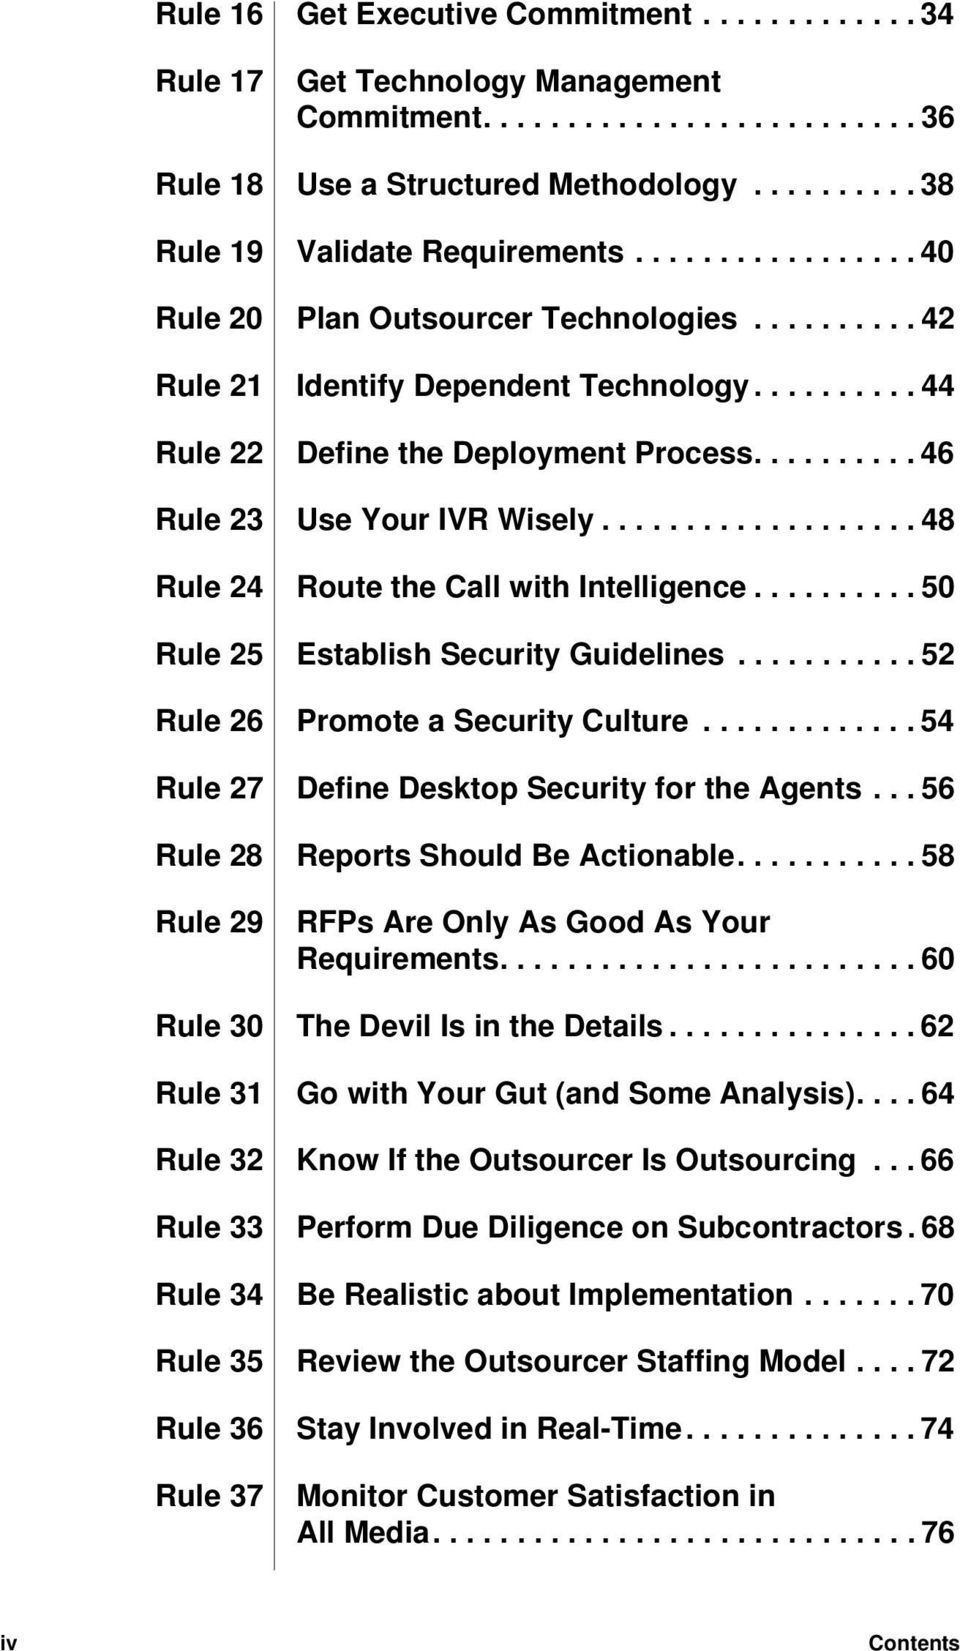 .................. 48 Rule 24 Route the Call with Intelligence.......... 50 Rule 25 Establish Security Guidelines........... 52 Rule 26 Promote a Security Culture.